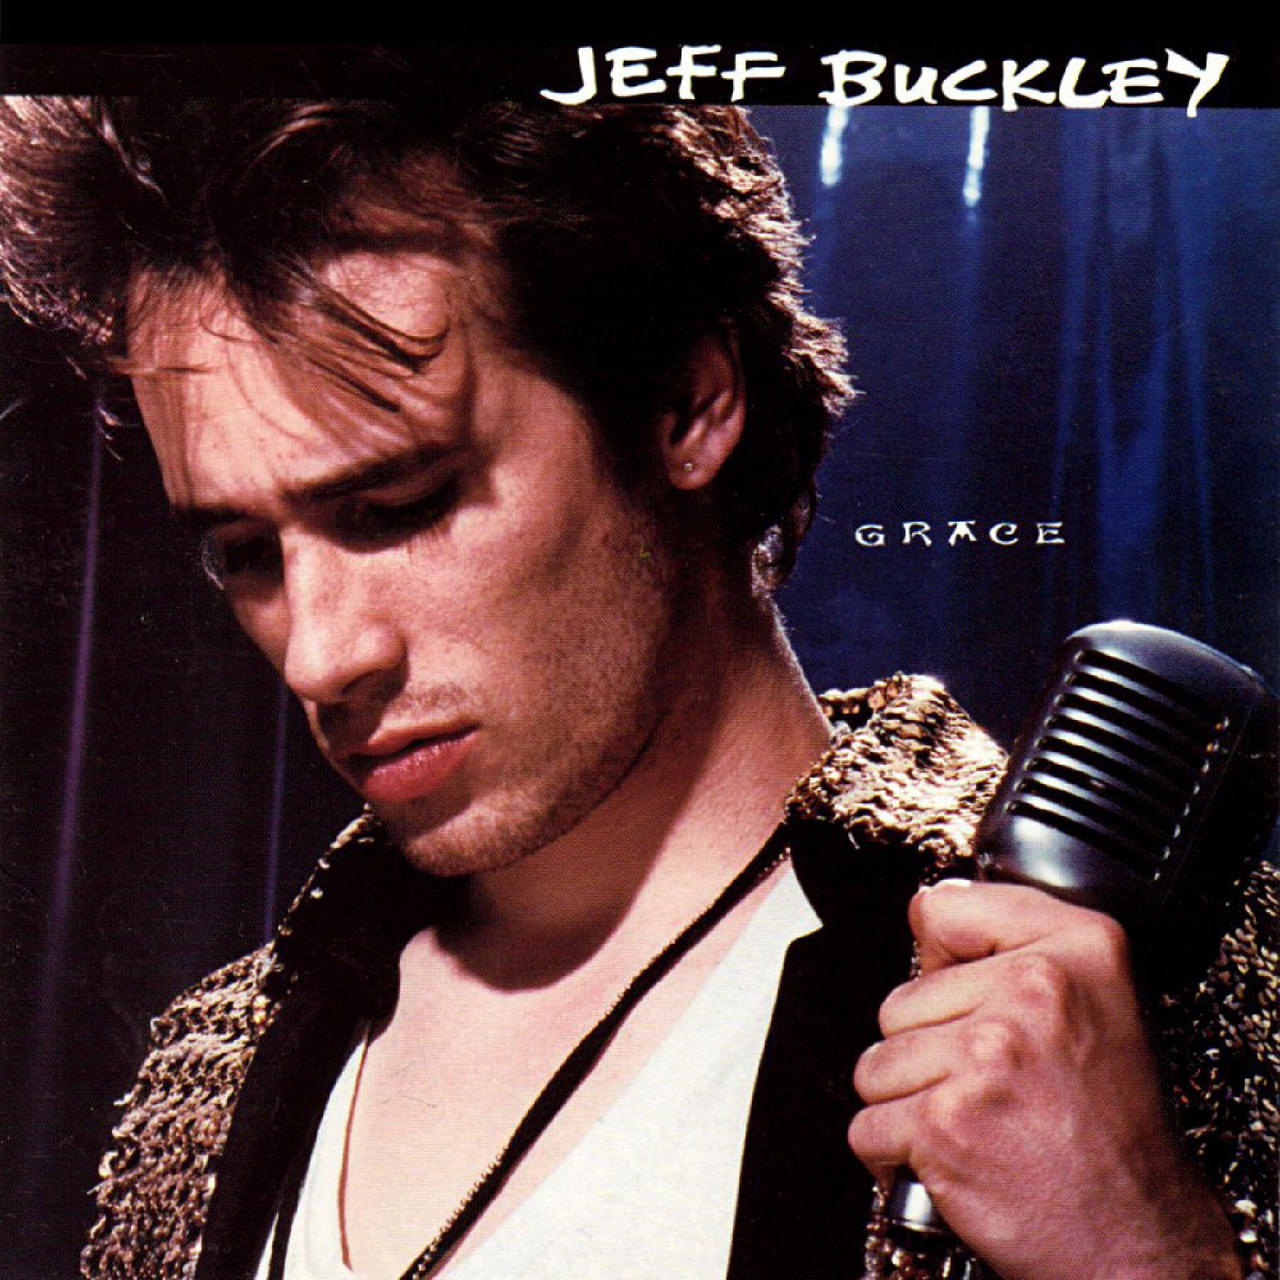 jeff buckley and music image